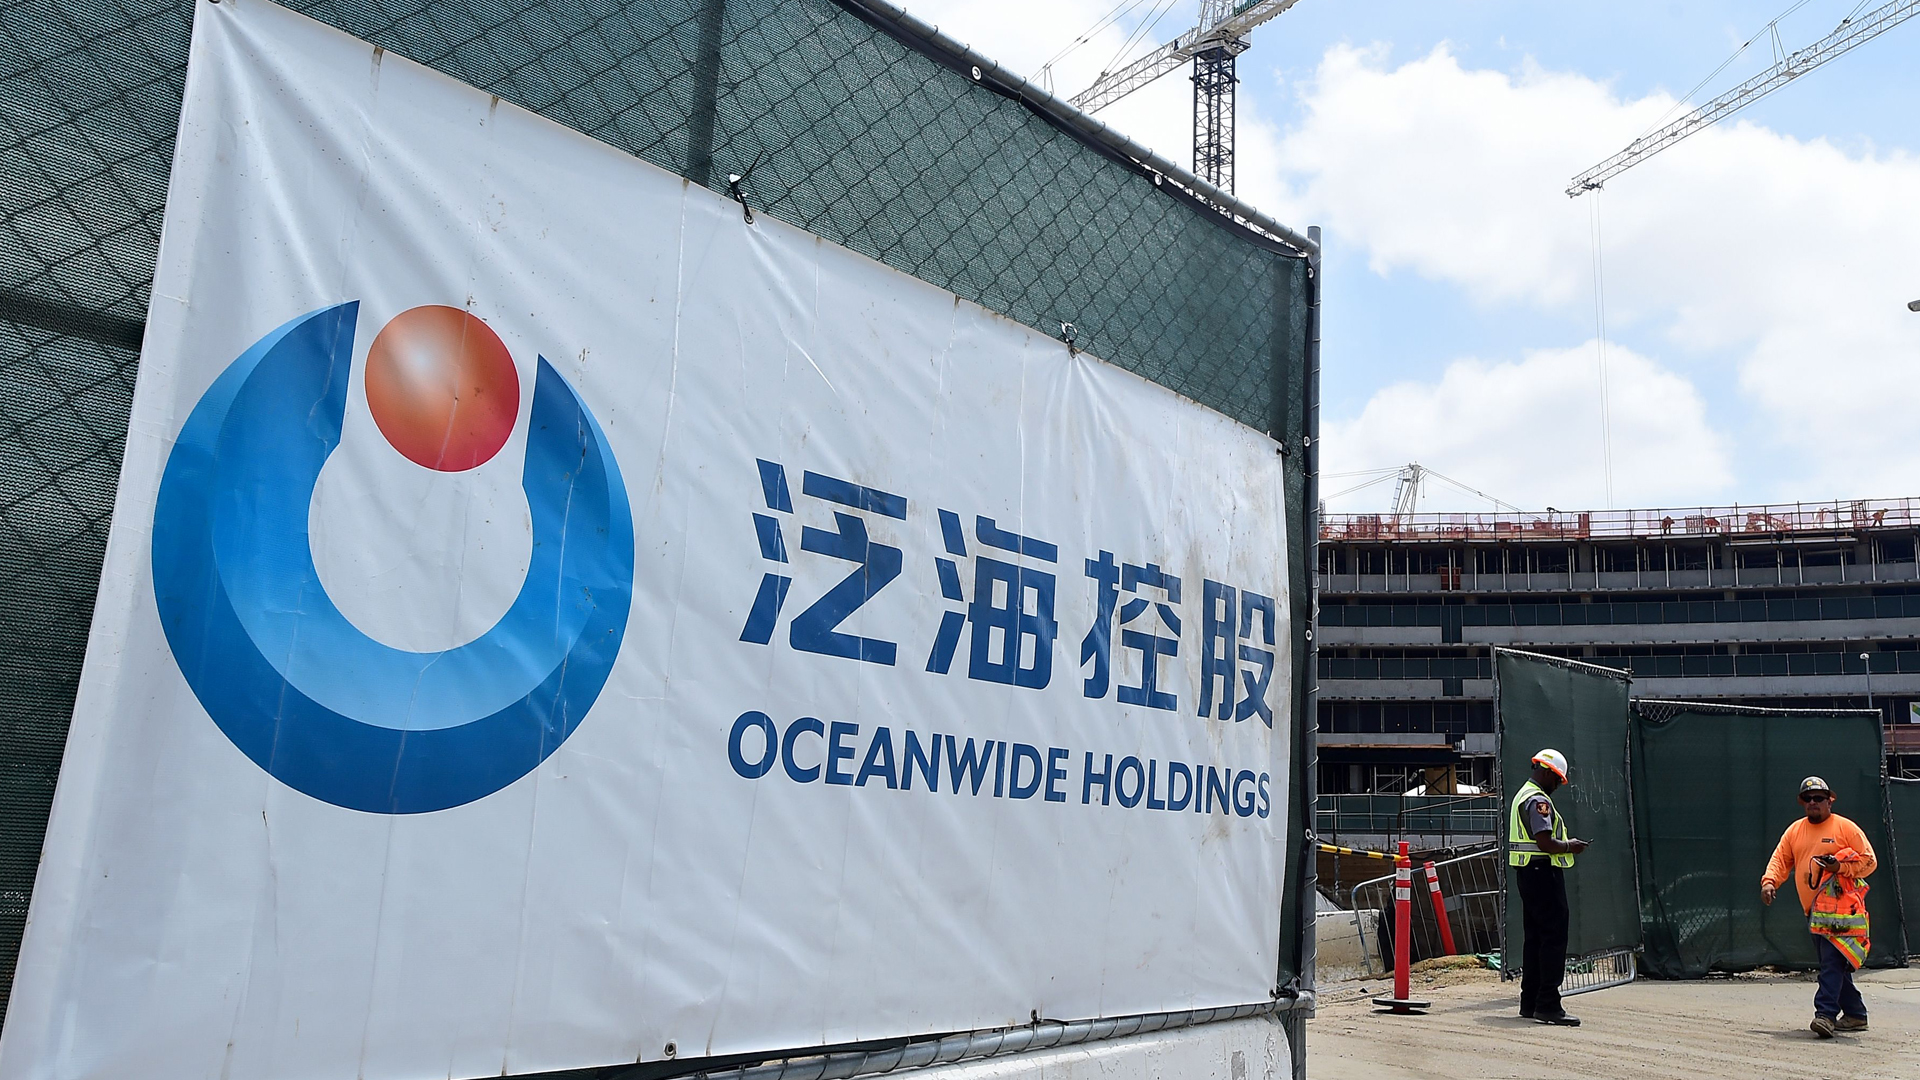 A banner of China's Oceanwide Real Estate Group is displayed at the construction site of the property, purchased in 2014, located across the street from the Staples Center in Los Angeles, on May 17, 2016. A huge surge in Chinese buying of both commercial U.S. real estate and residential property last year took their five-year investment total to more than $110 billion, according to a study from the Asia Society and Rosen Consulting Group, as Chinese nationals became the largest foreign buyers of U.S. homes. (Credit: FREDERIC J. BROWN/AFP/Getty Images)